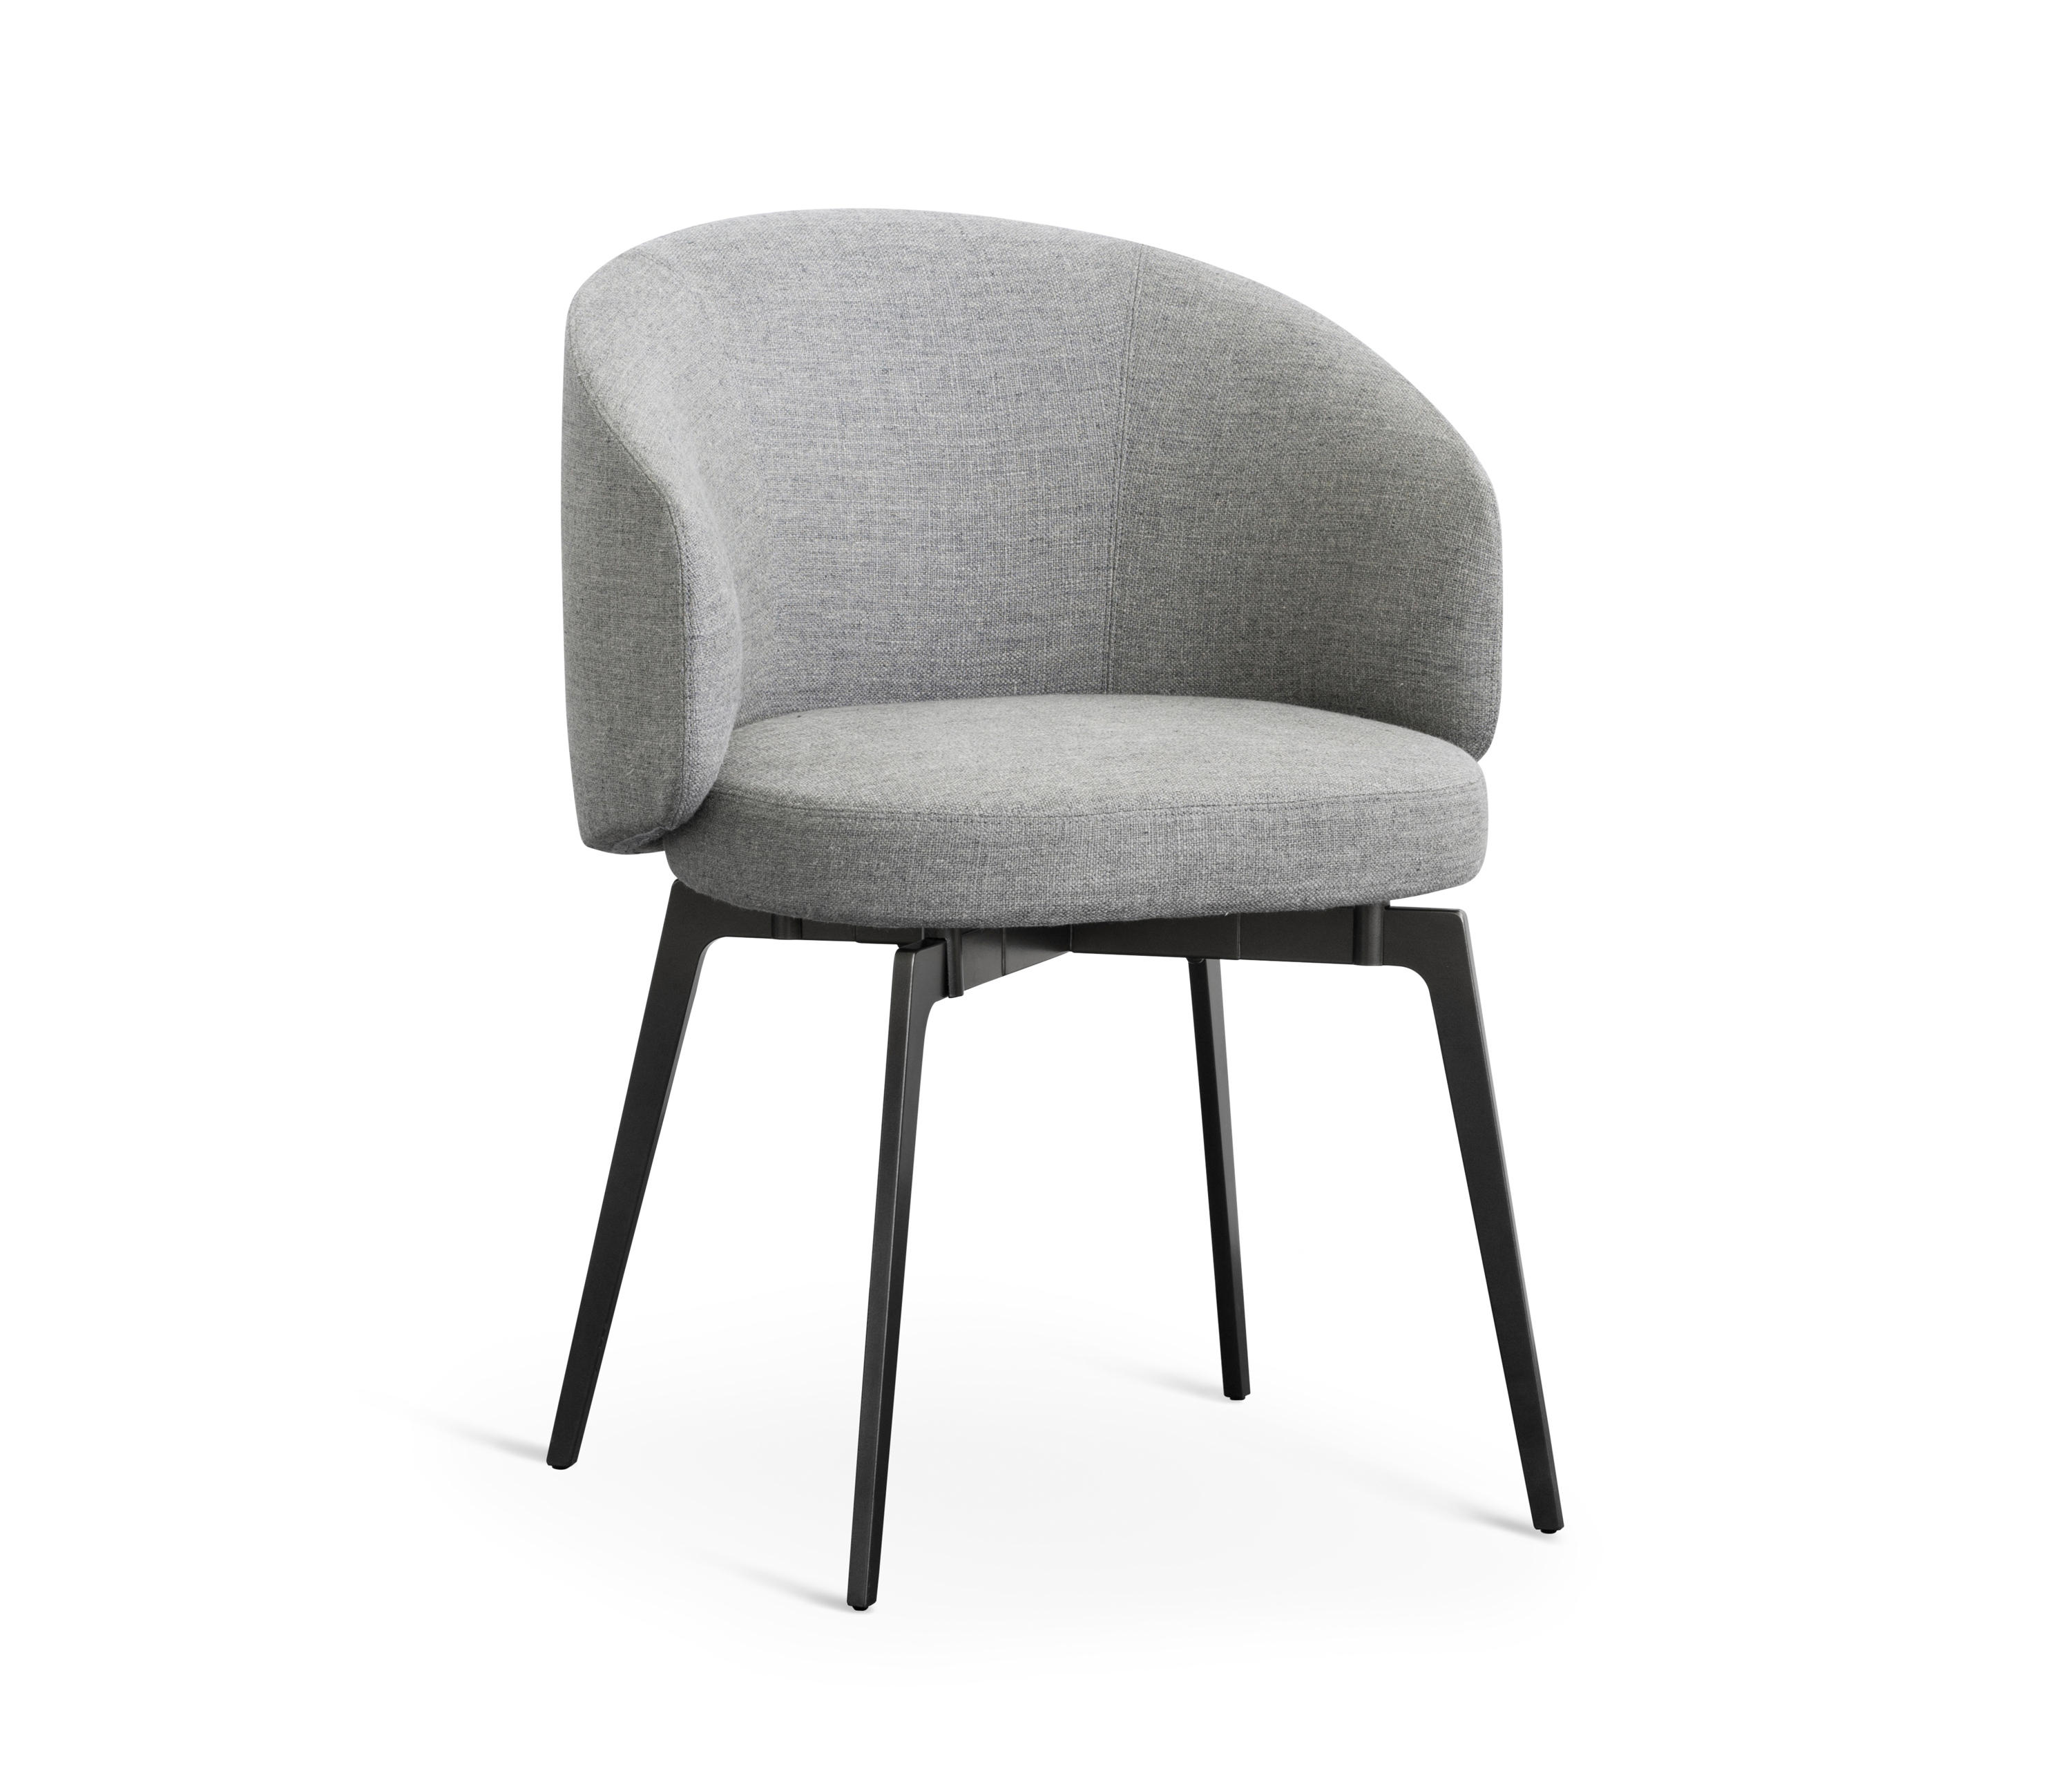 Designer Chair: BEA - Chairs From LEMA